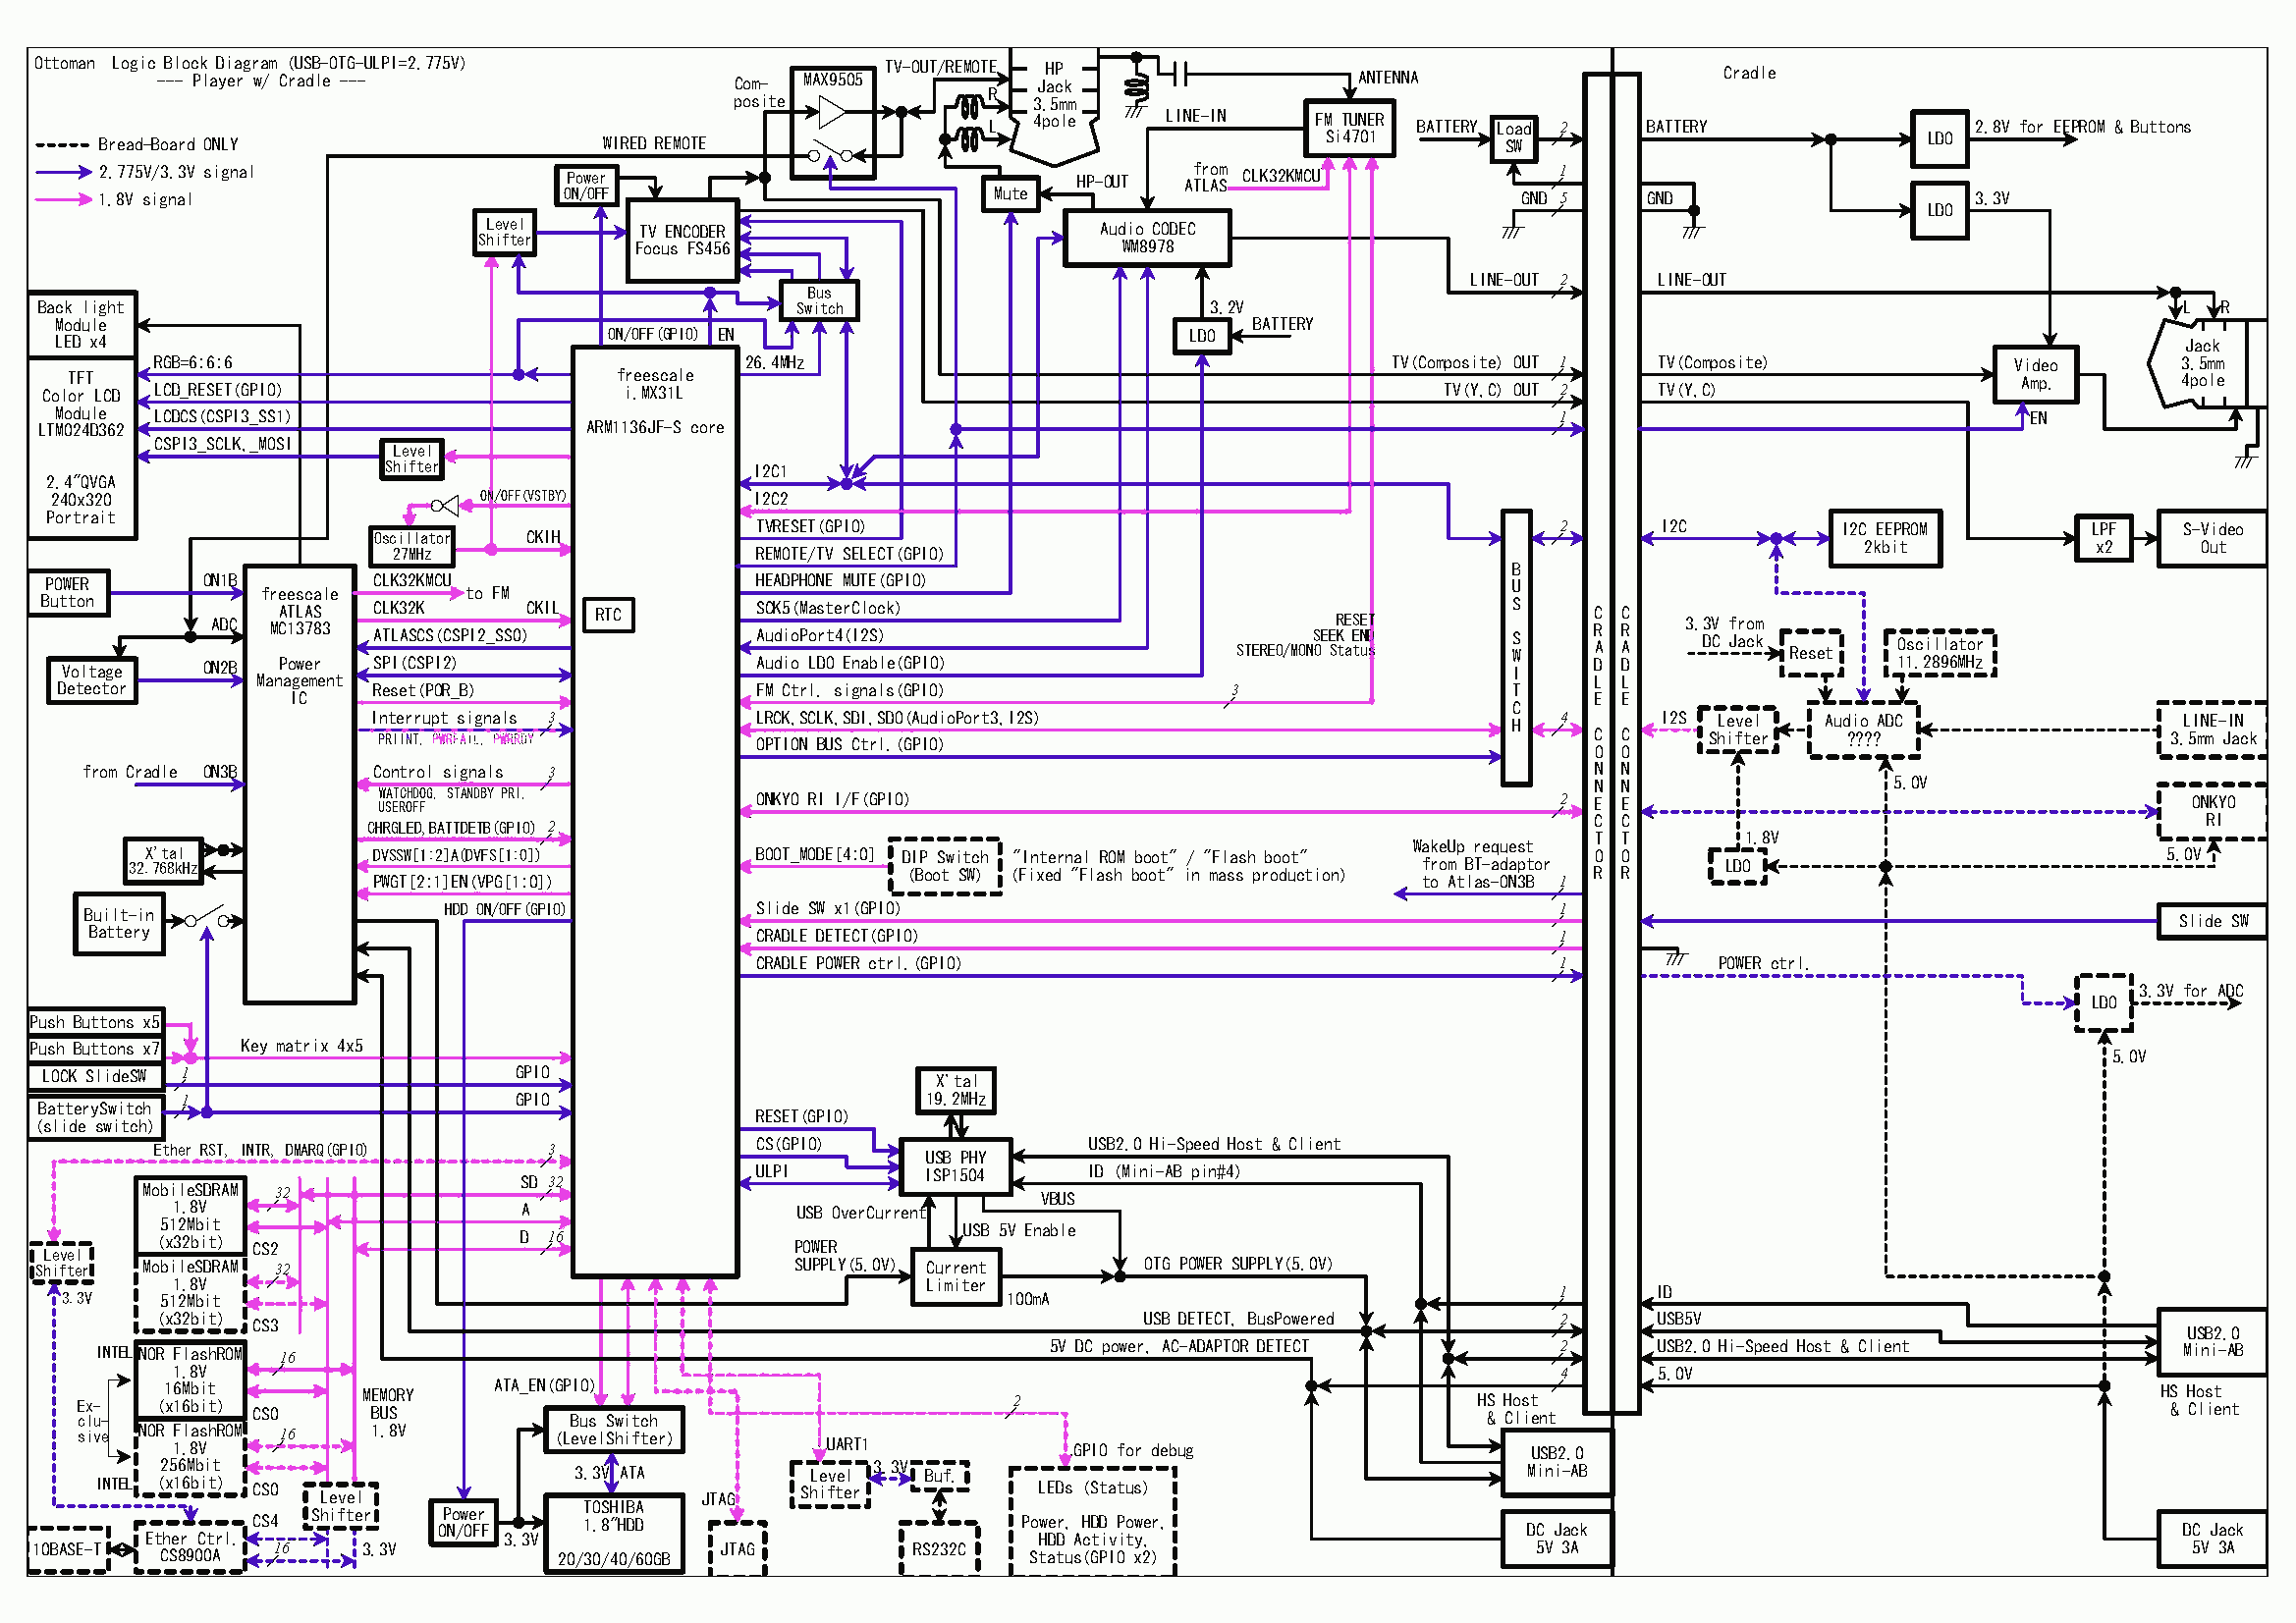 Network Diagram Logic Blocks Modern Design Of Wiring Bus Computer Block Free Engine Image For User Scheduling Pmp